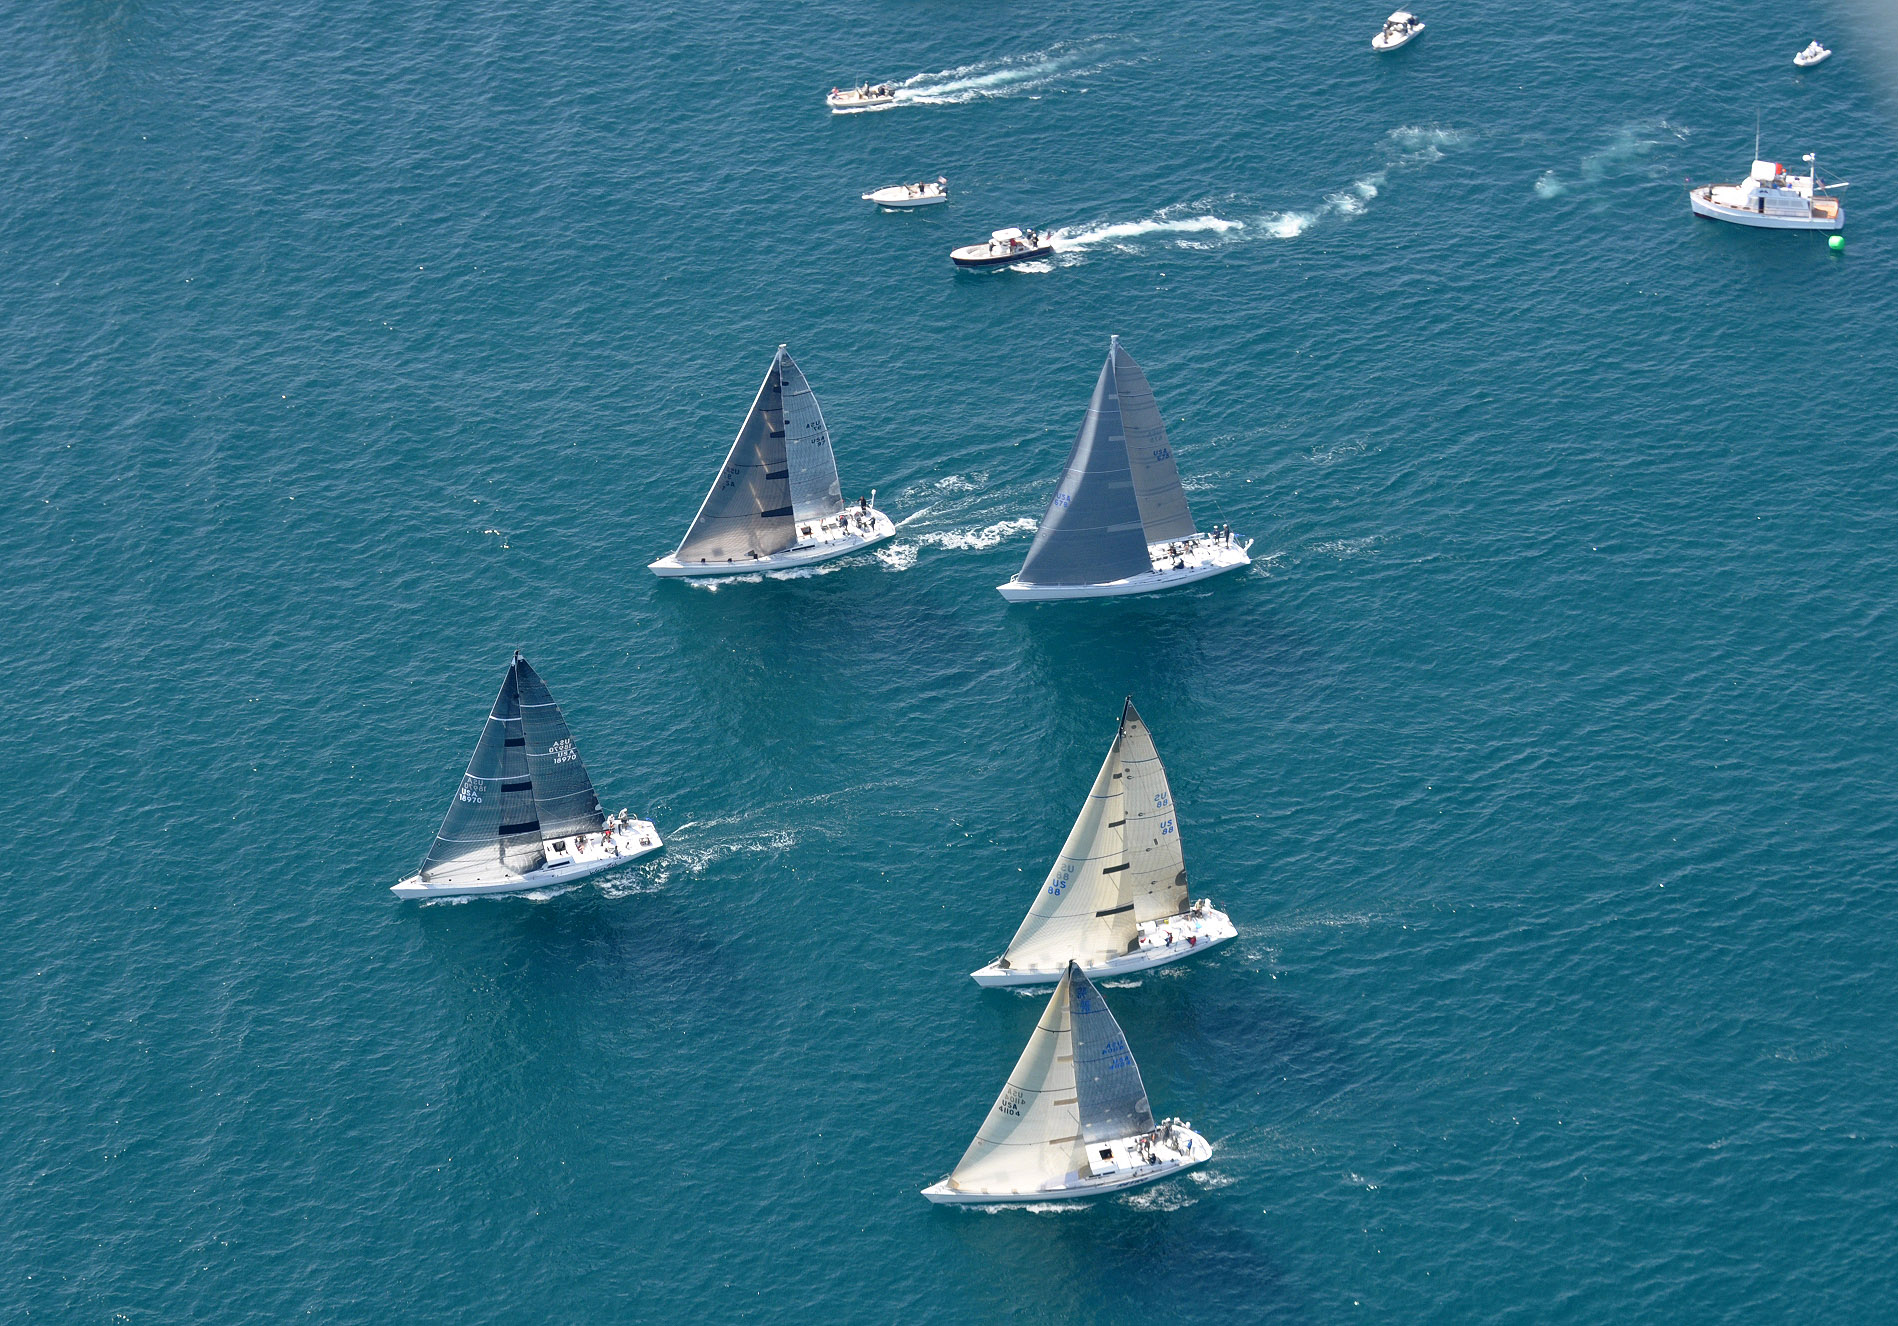 Cabo_San_Lucas_Race_Start_2013_photo_D_Ramey_Logan.jpg